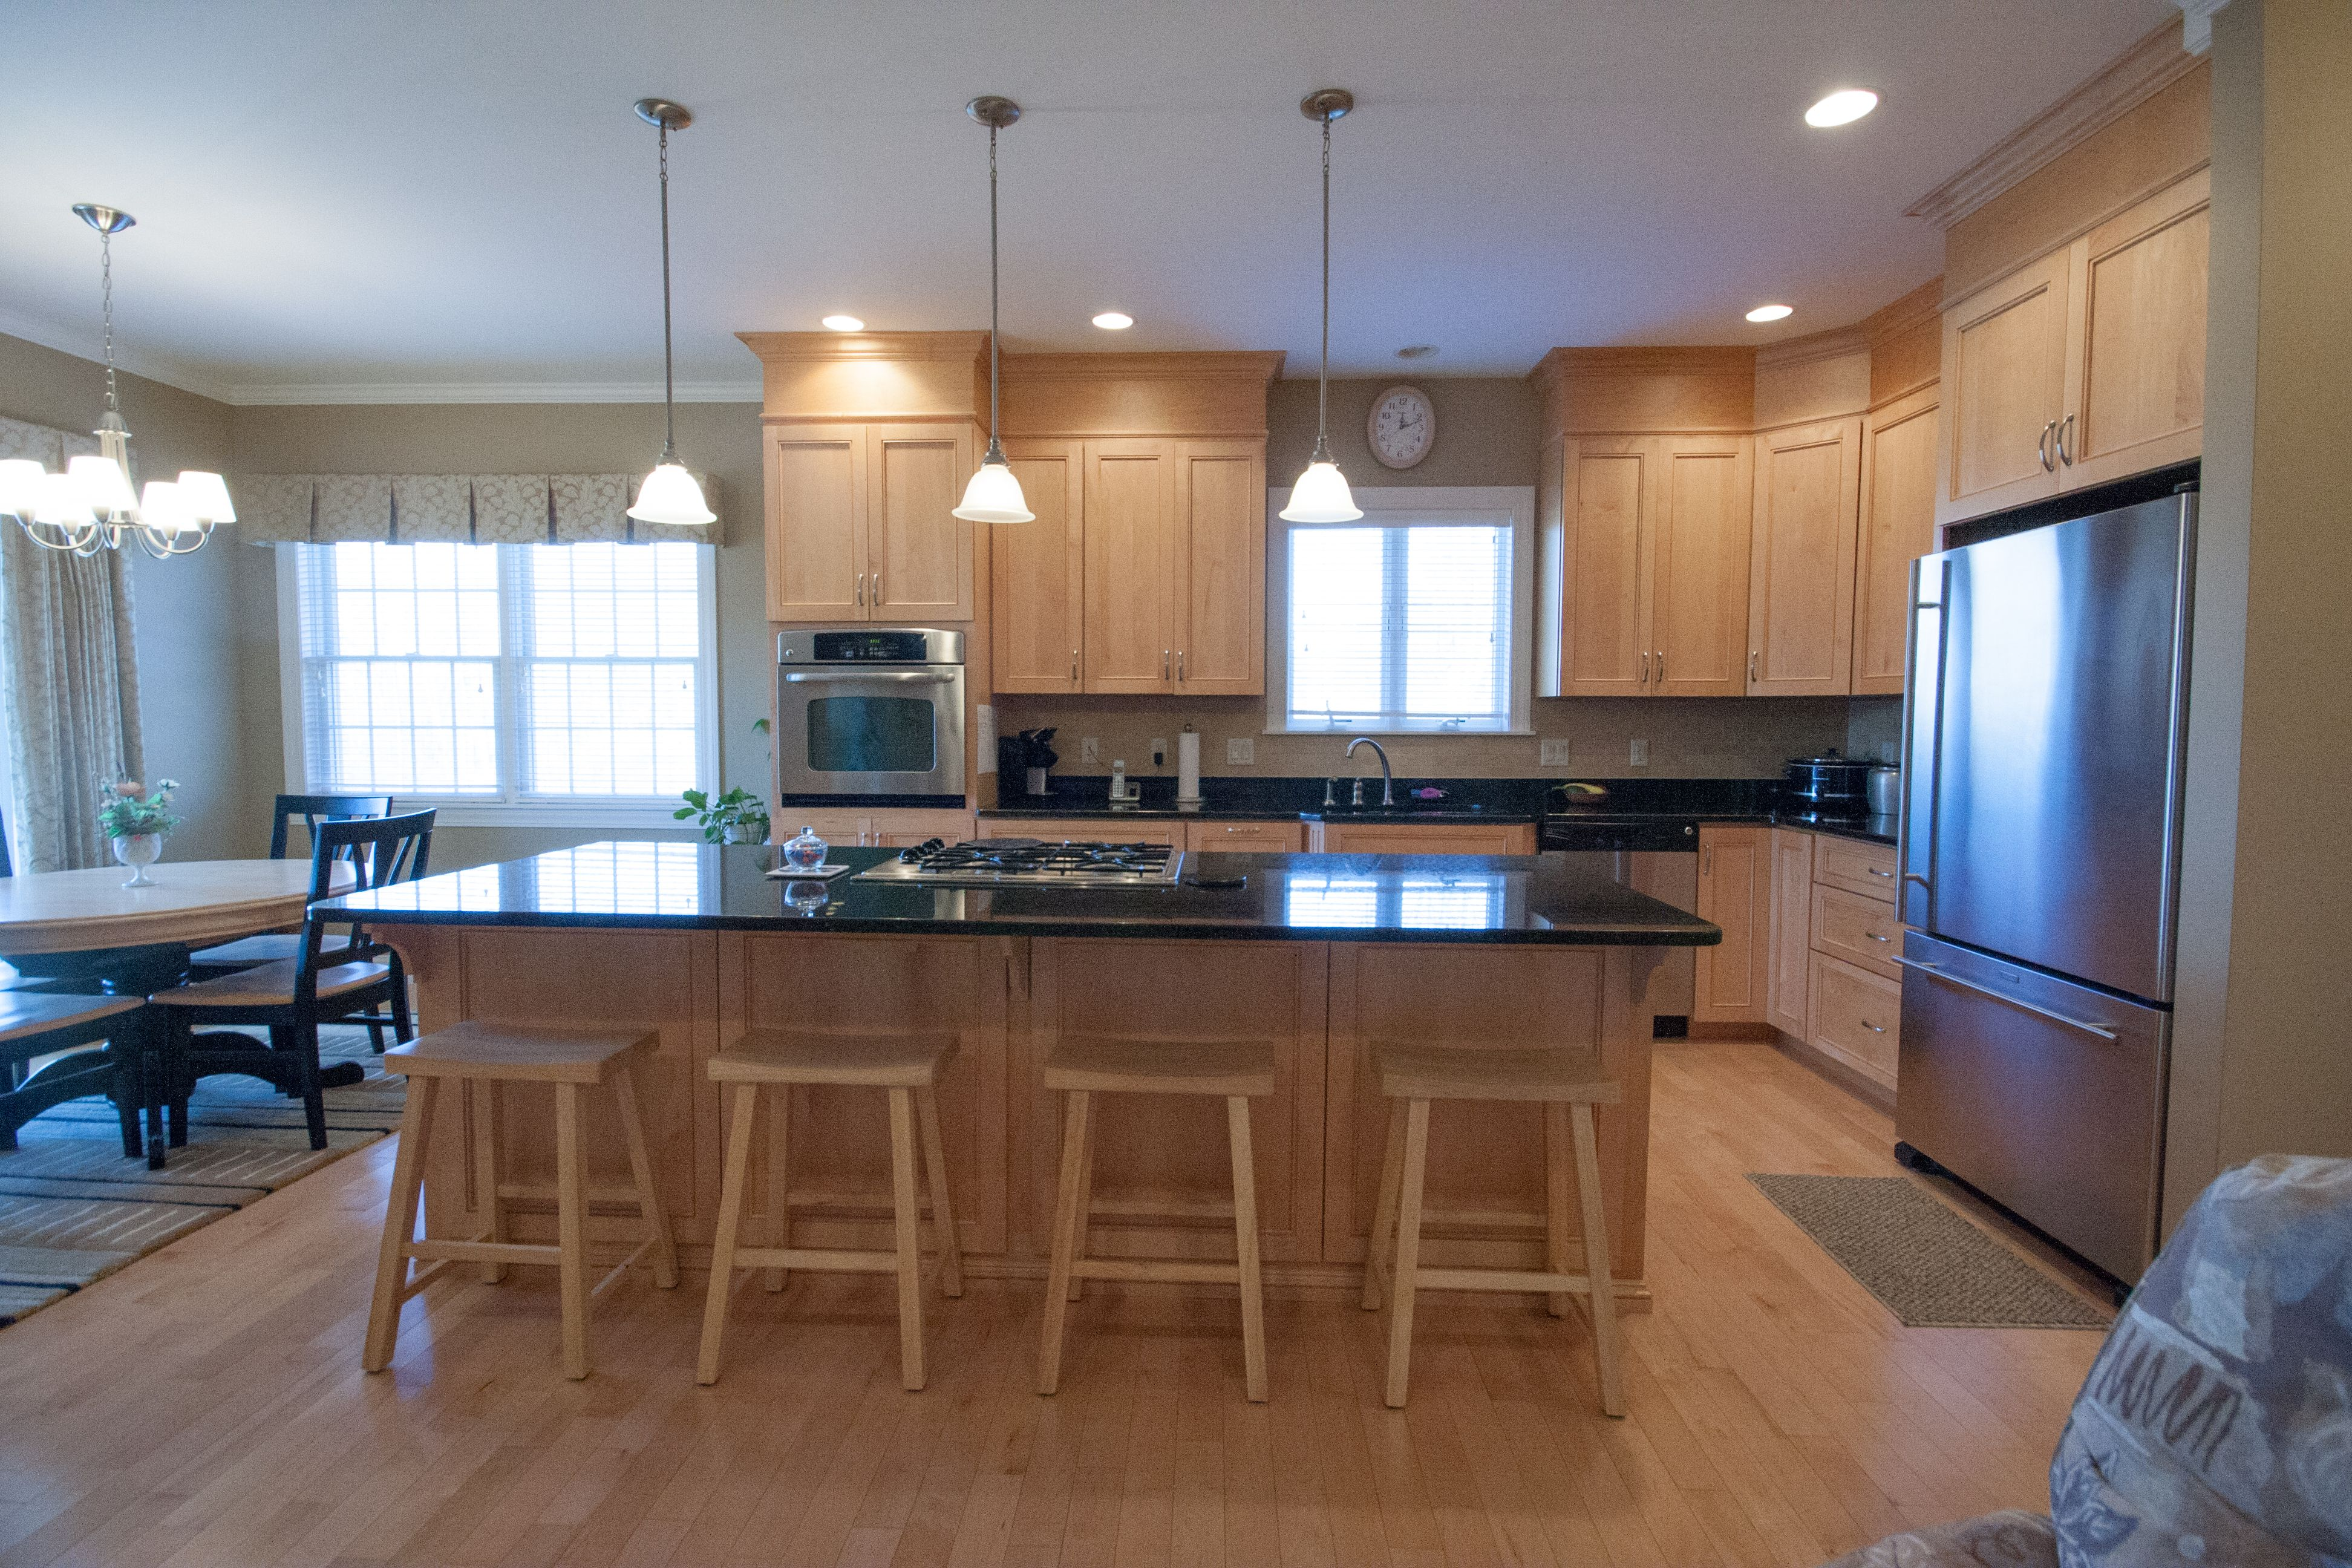 Kitchen featured in the Payson By Davis Construction Services in Burlington, VT